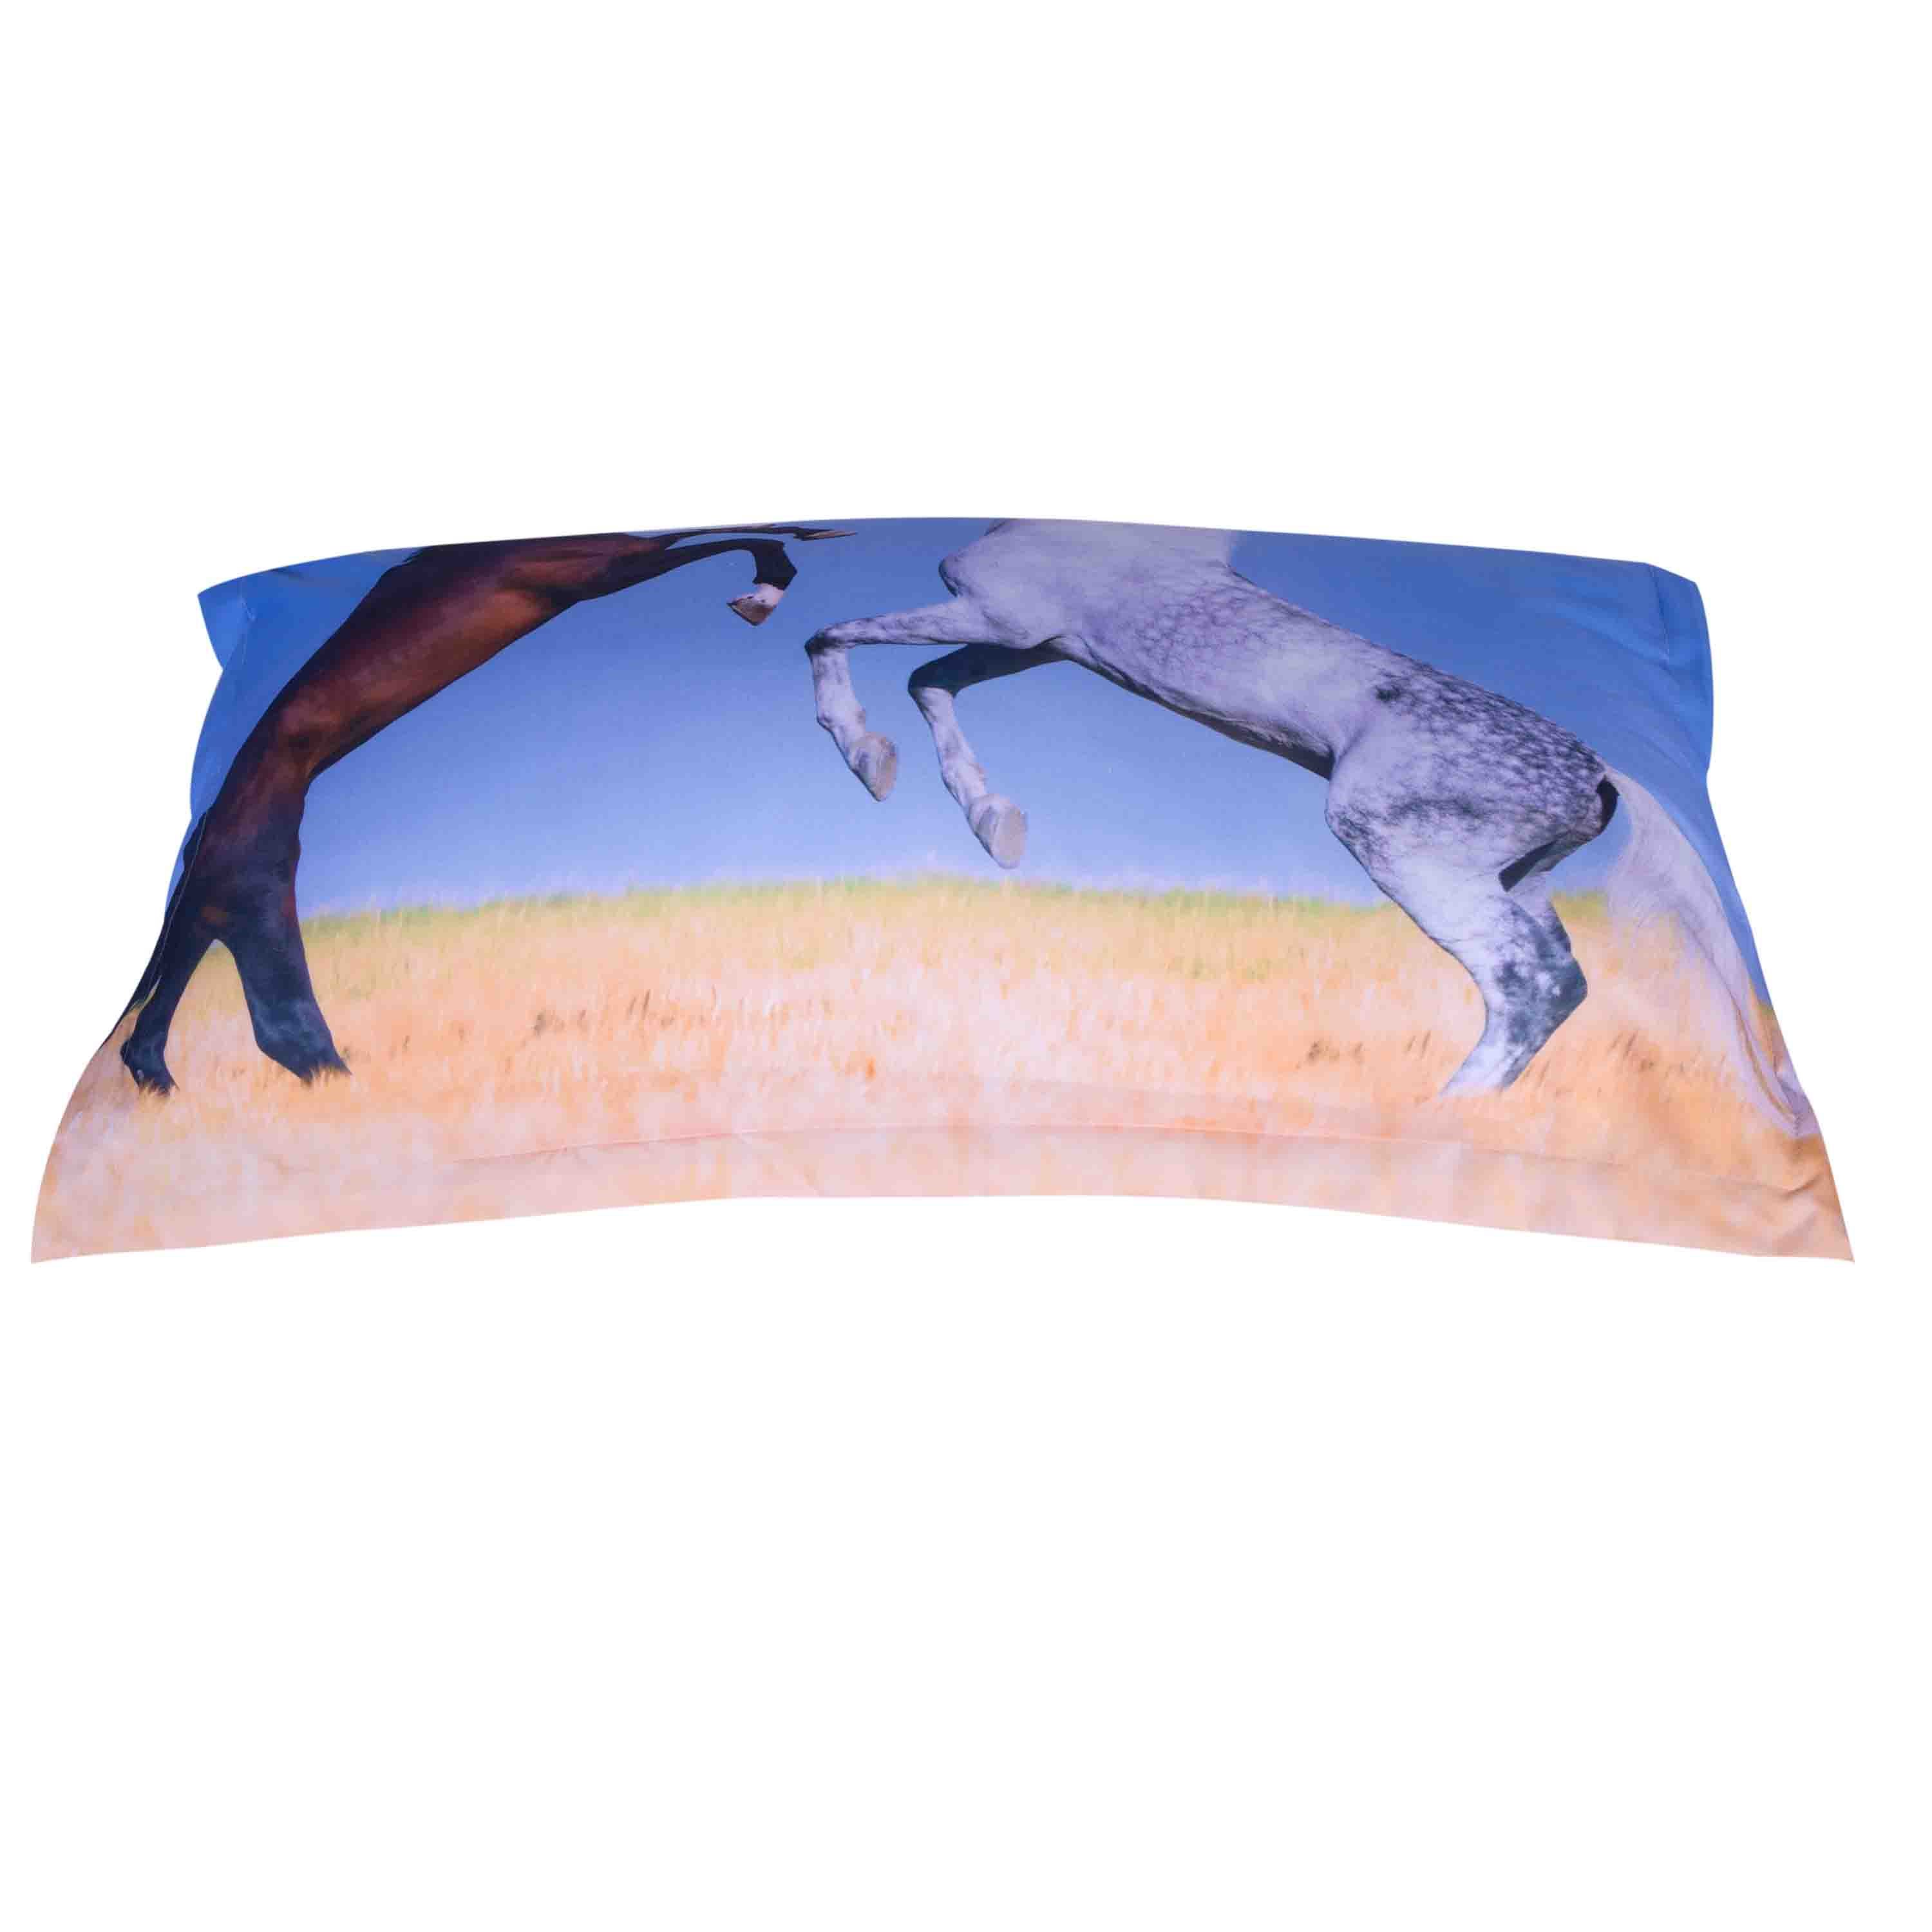 3D Rearing White and Brown Horses Printed Cotton 4-Piece Bedding Sets/Duvet Covers